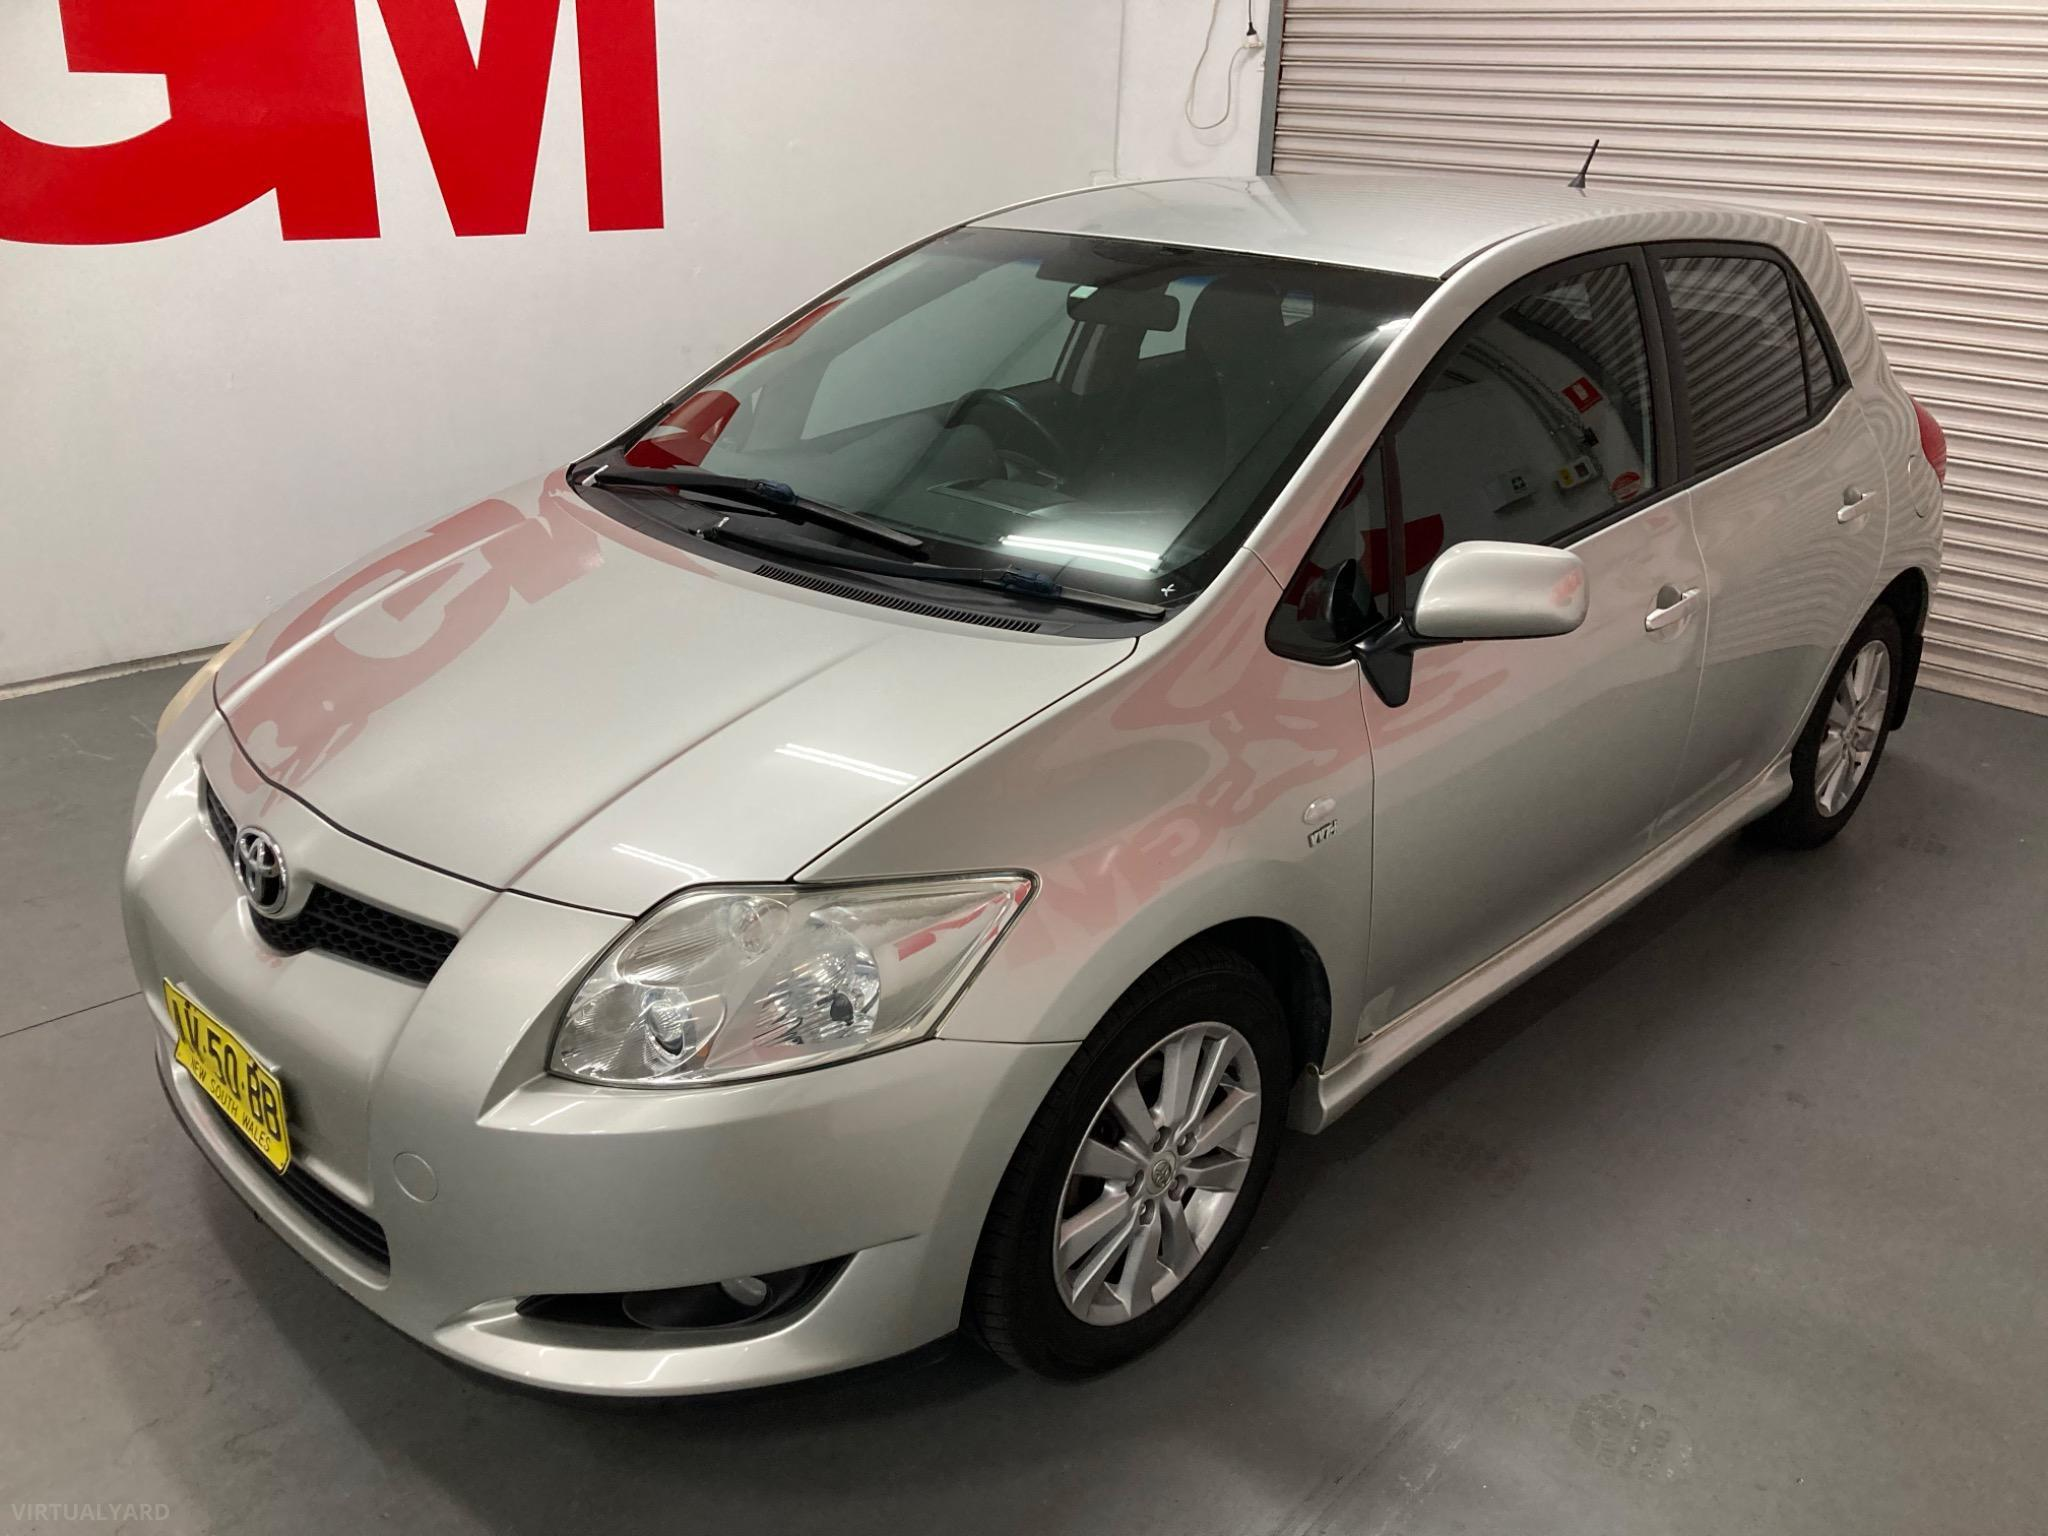 2007 Toyota Corolla ZRE152R Levin SX Hatchback 5dr Auto 4sp 1.8i Picture 8